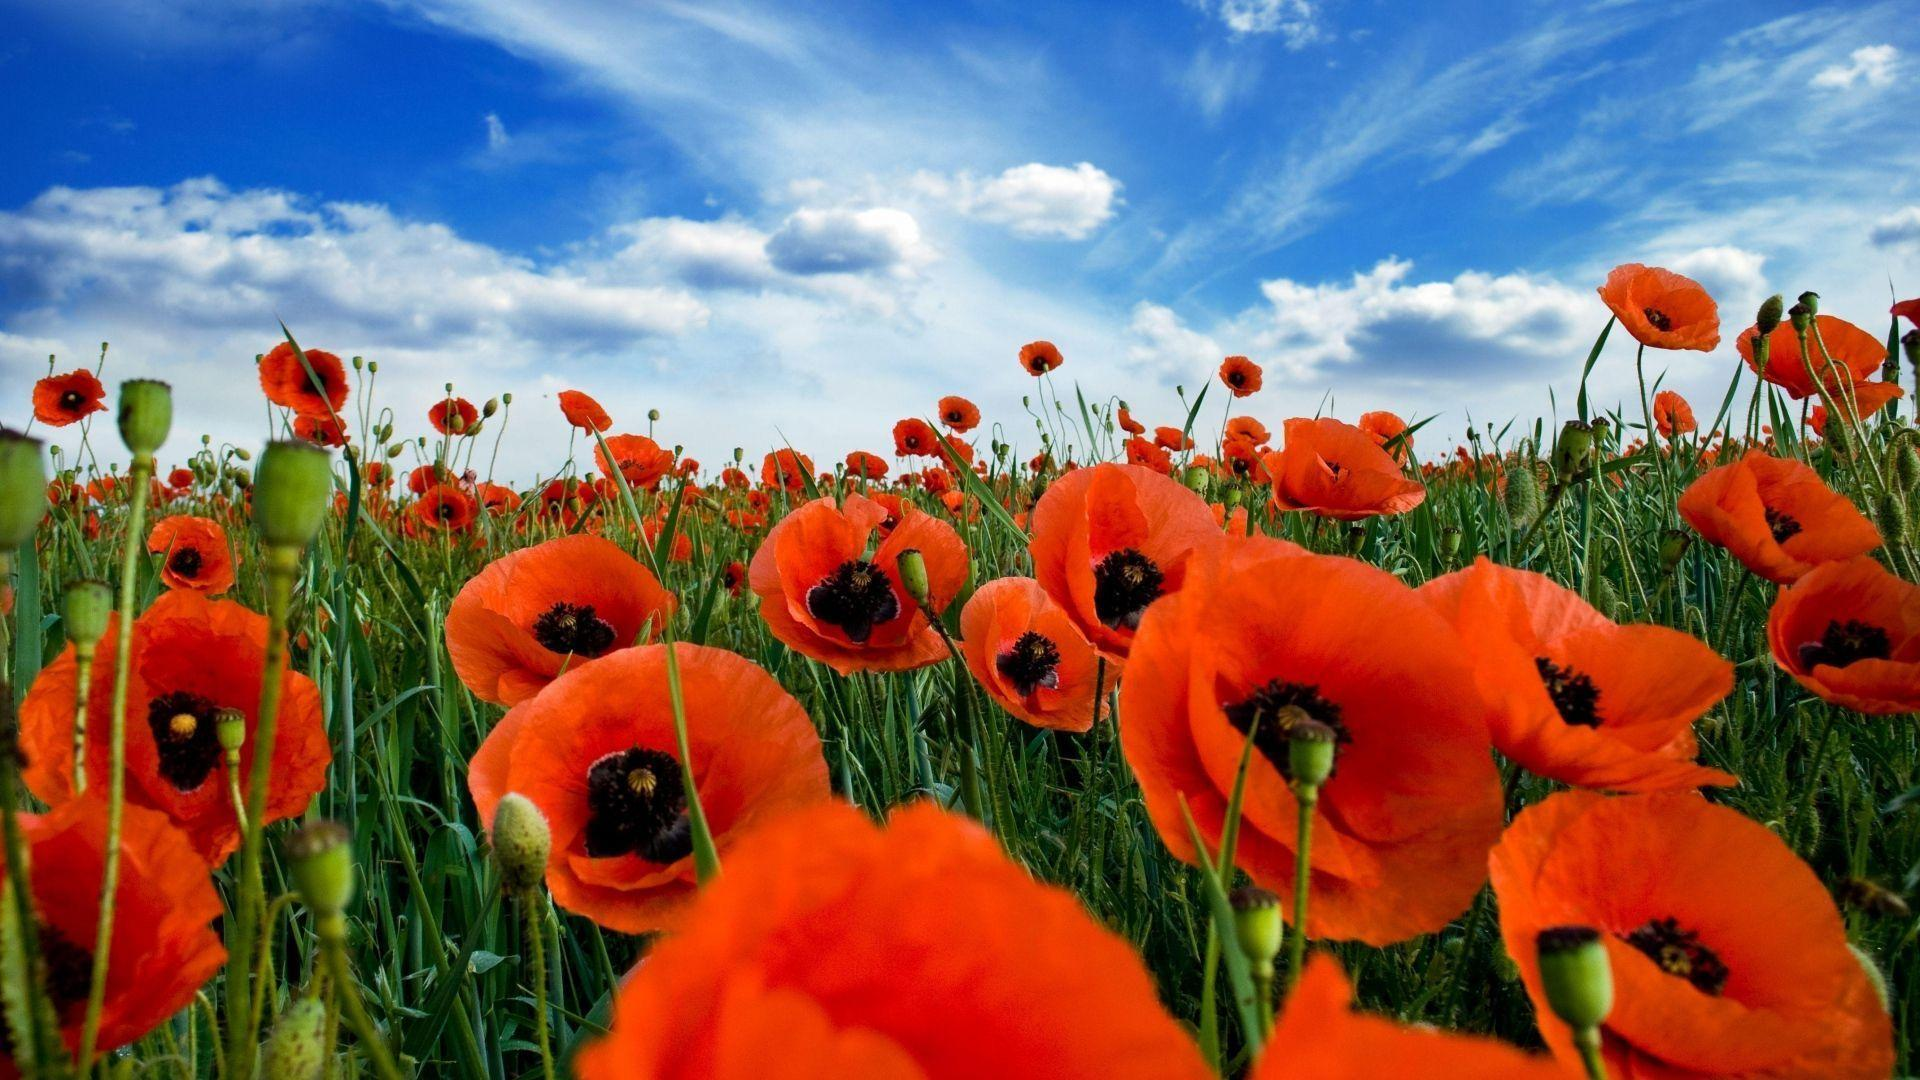 Wallpapers poppies wallpaper cave - Poppy wallpaper ...